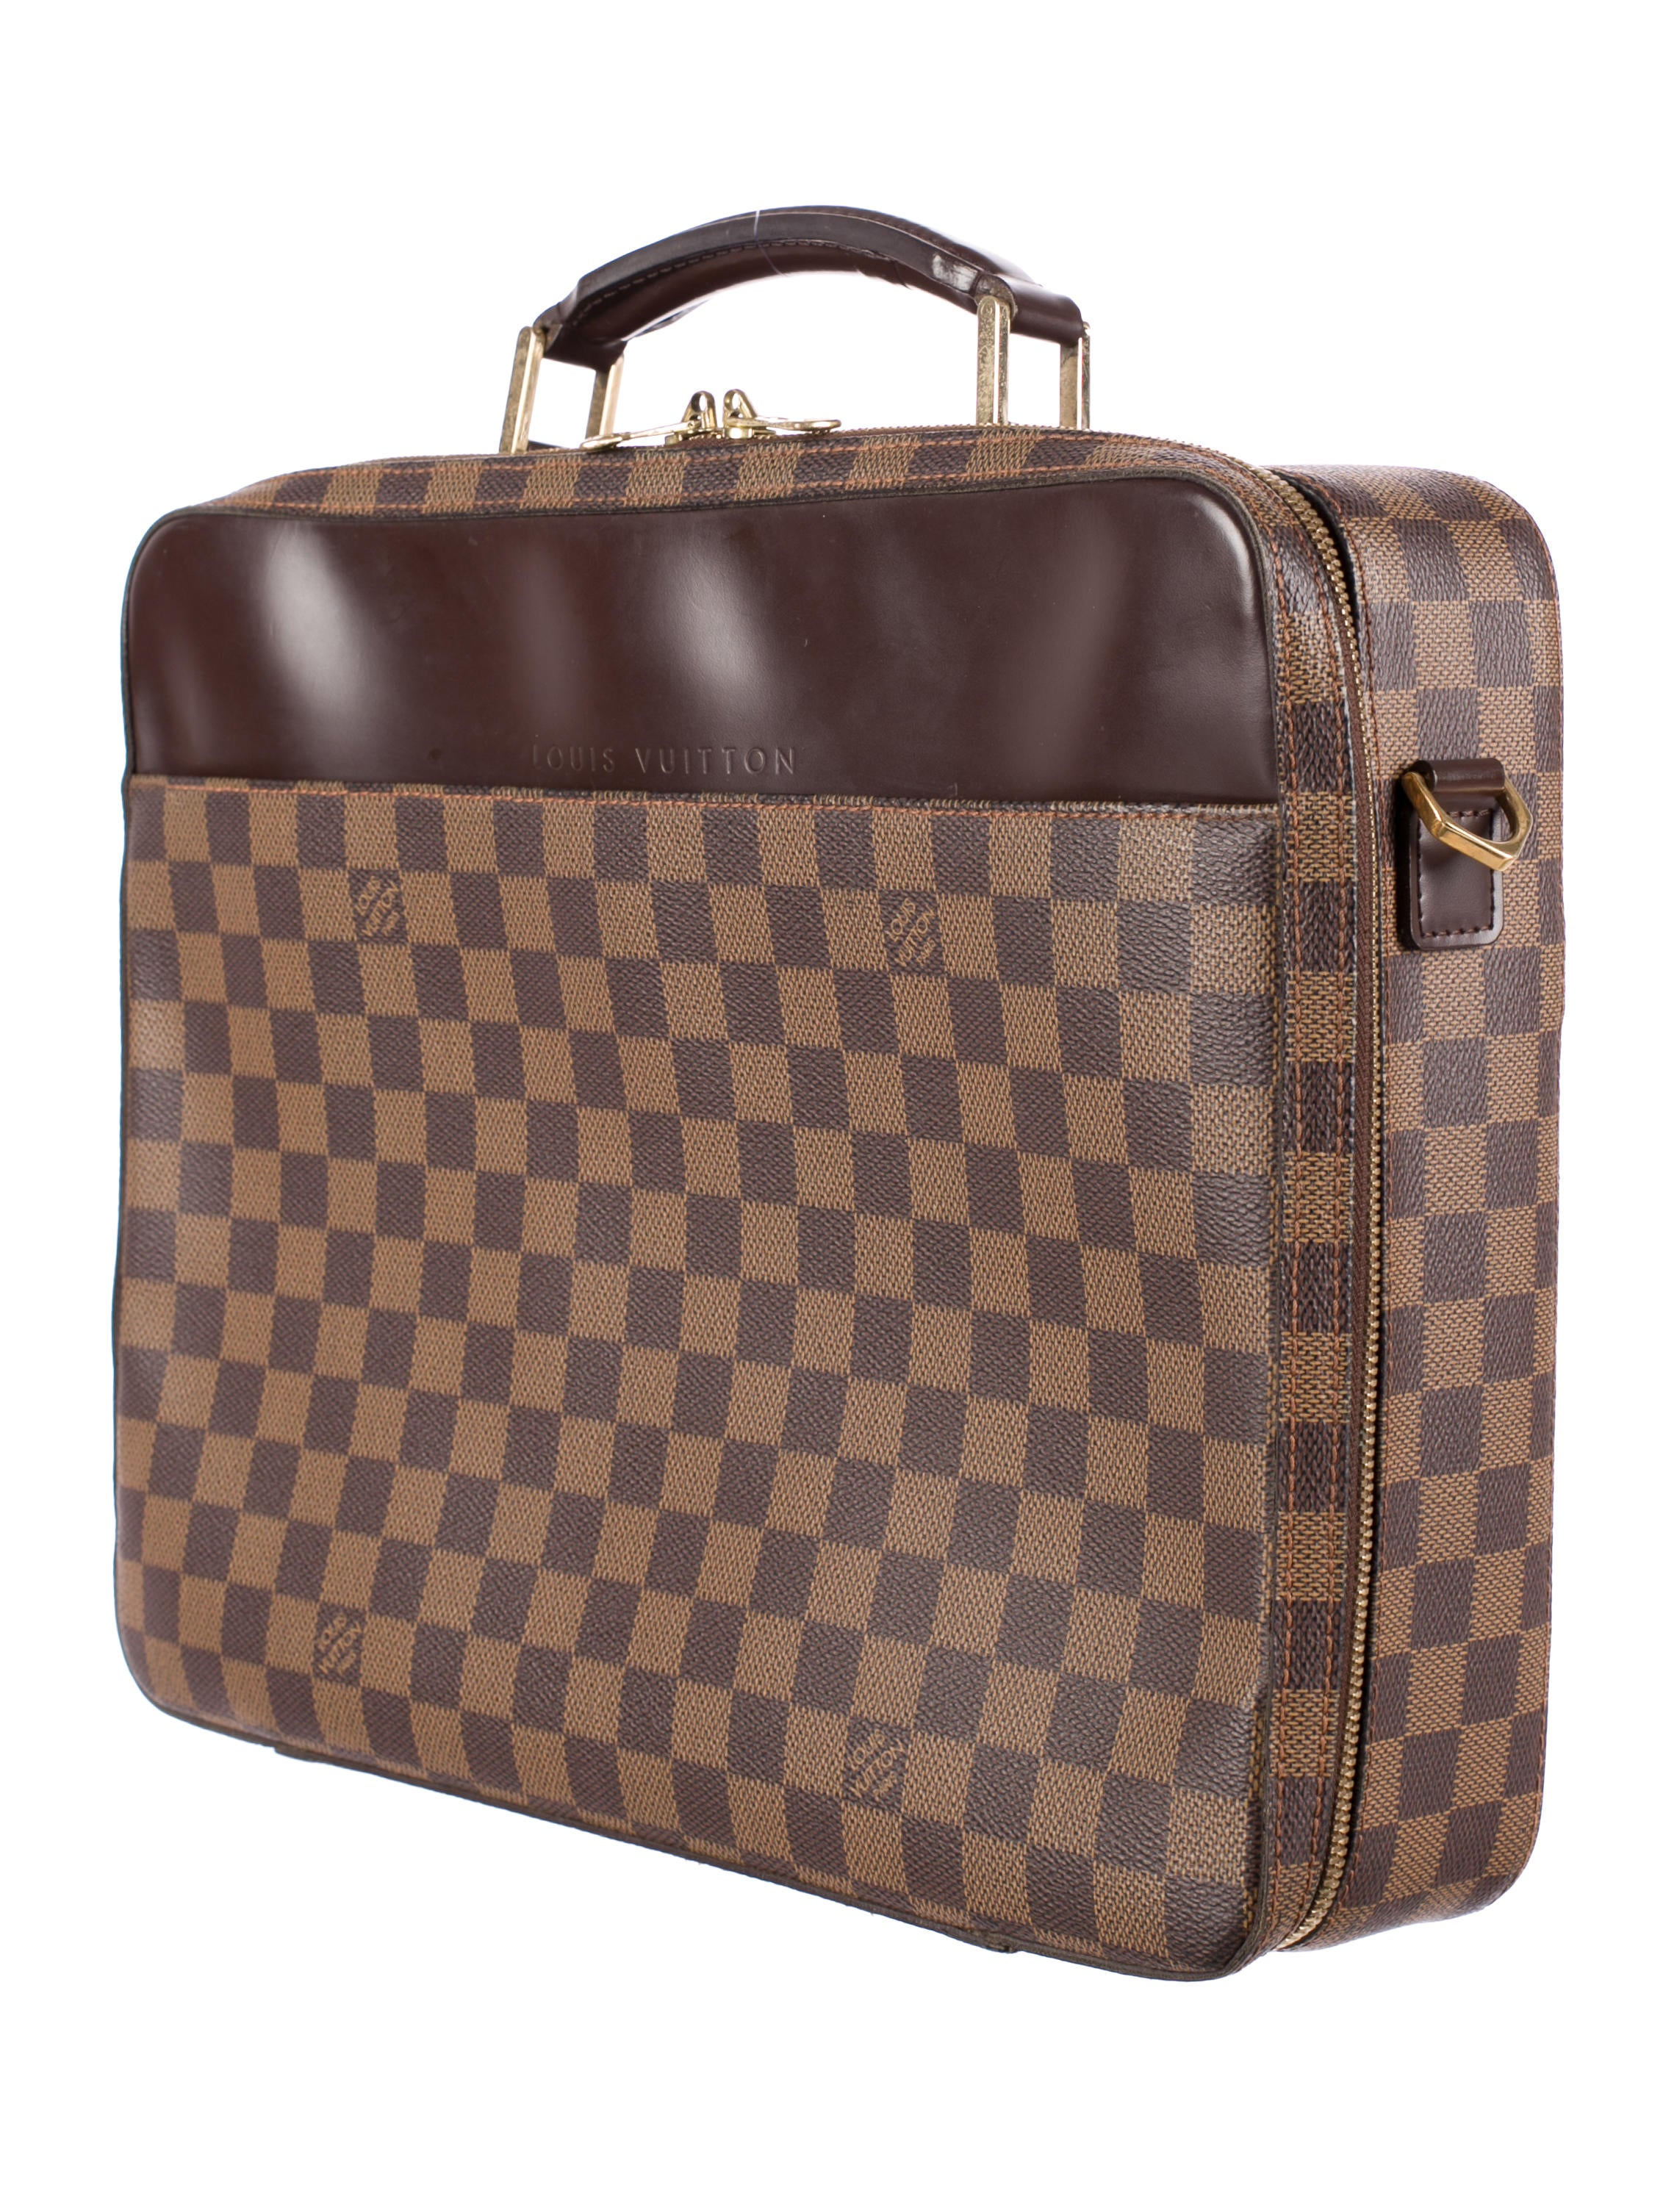 Louis vuitton damier porte ordinateur sabana bags for Porte ordinateur